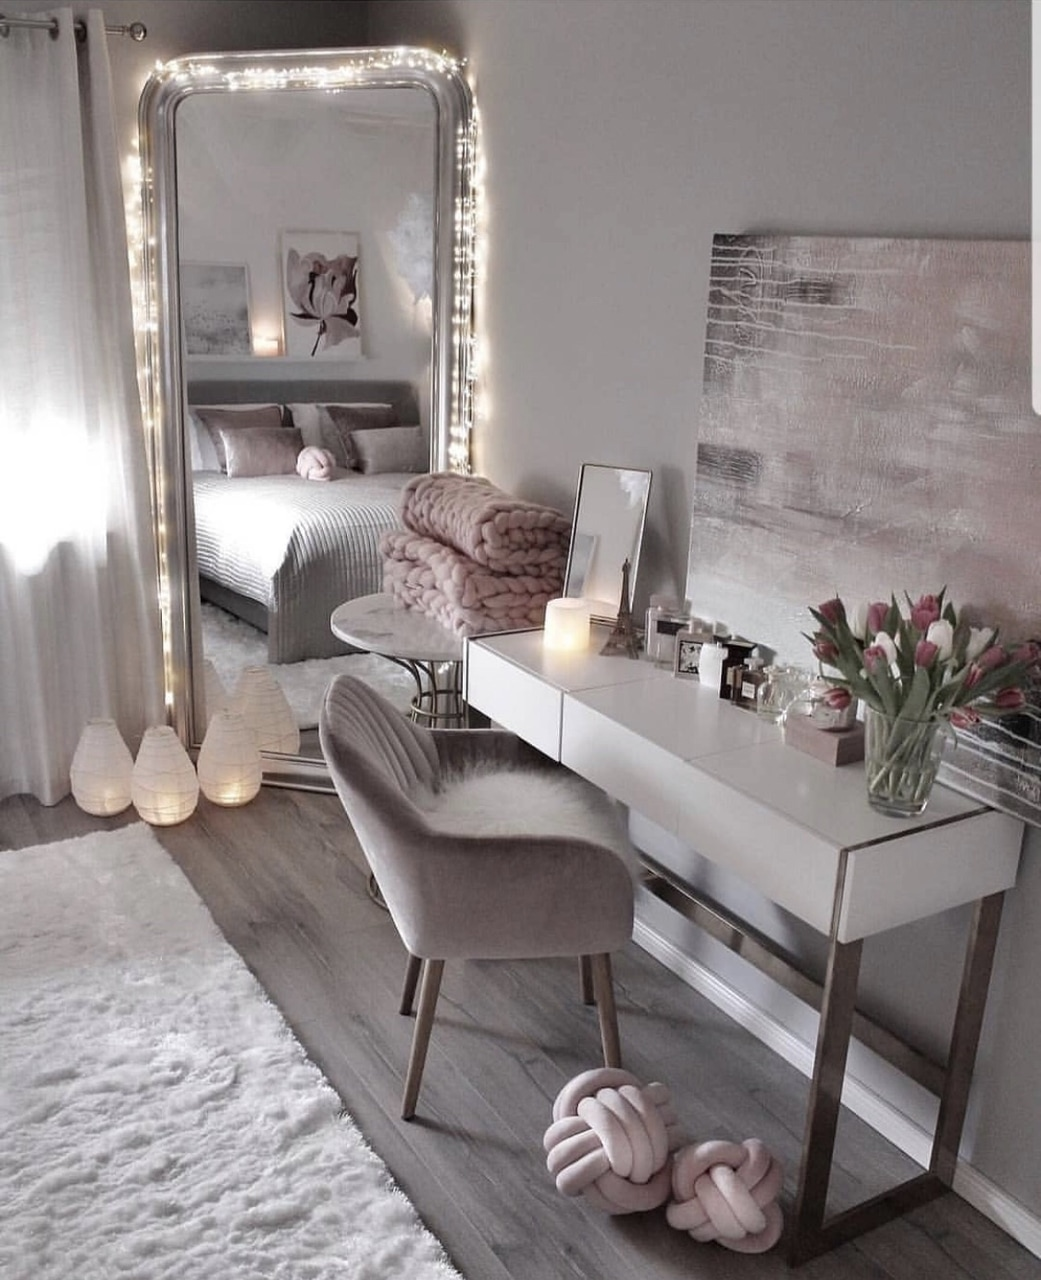 Aesthetic Bedroom Ideas Decorations And Bedroom Image 6836717 On Favim Com